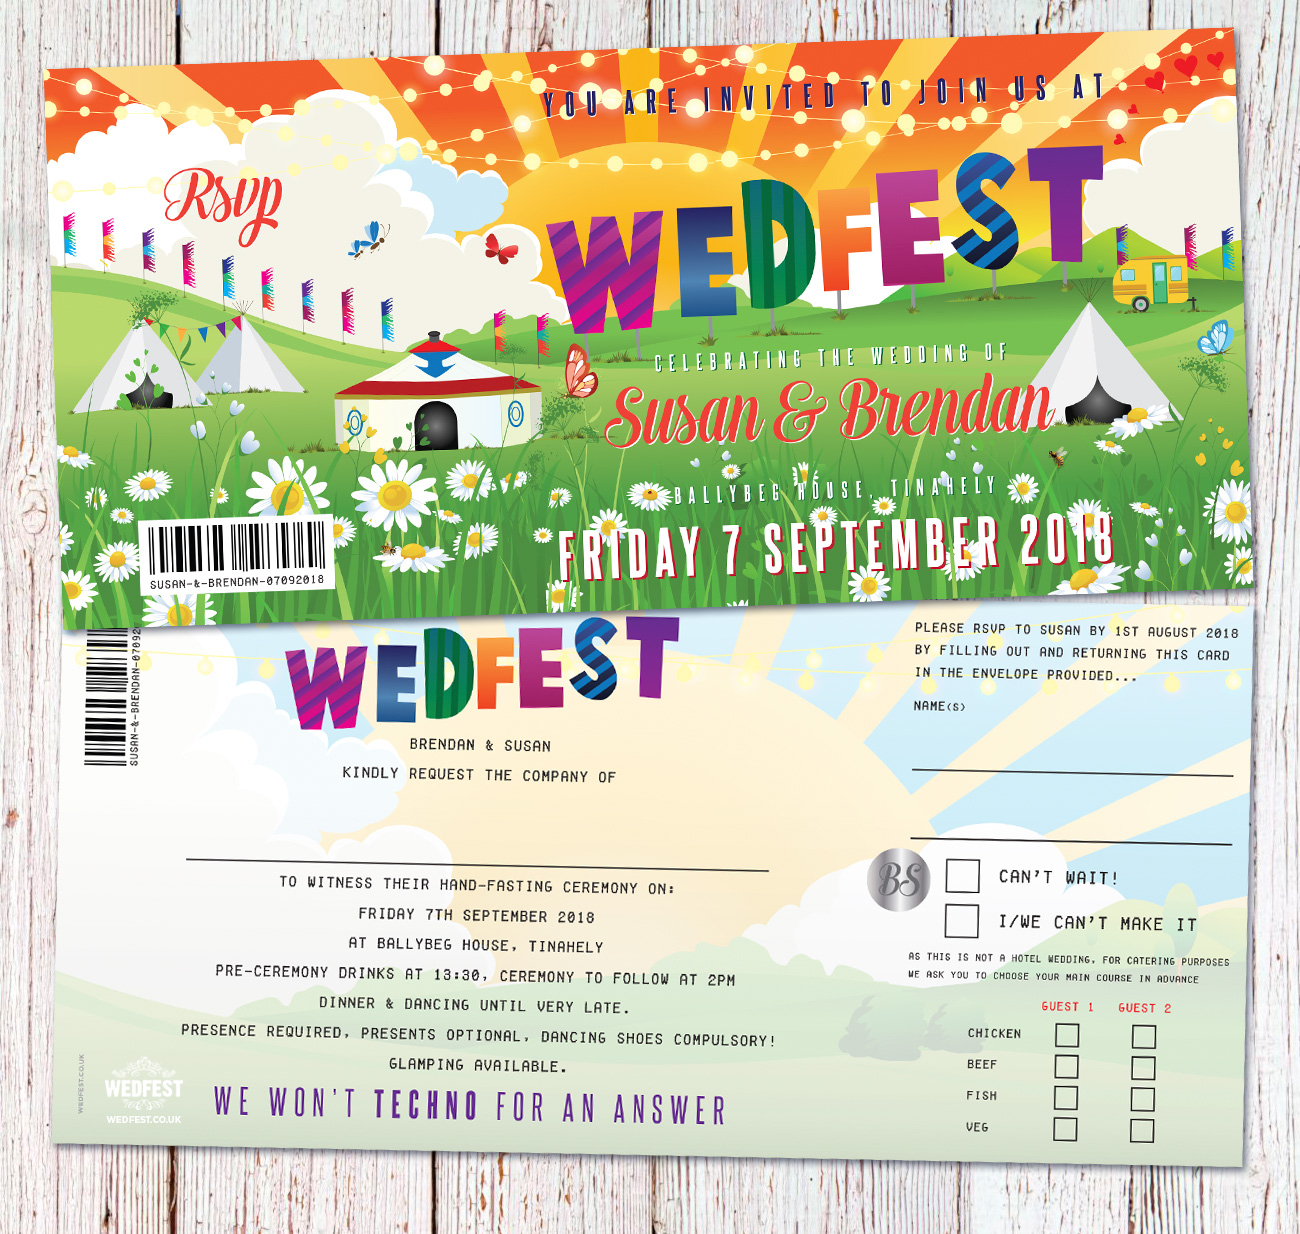 wedfest festival weddings ireland wedding invitations